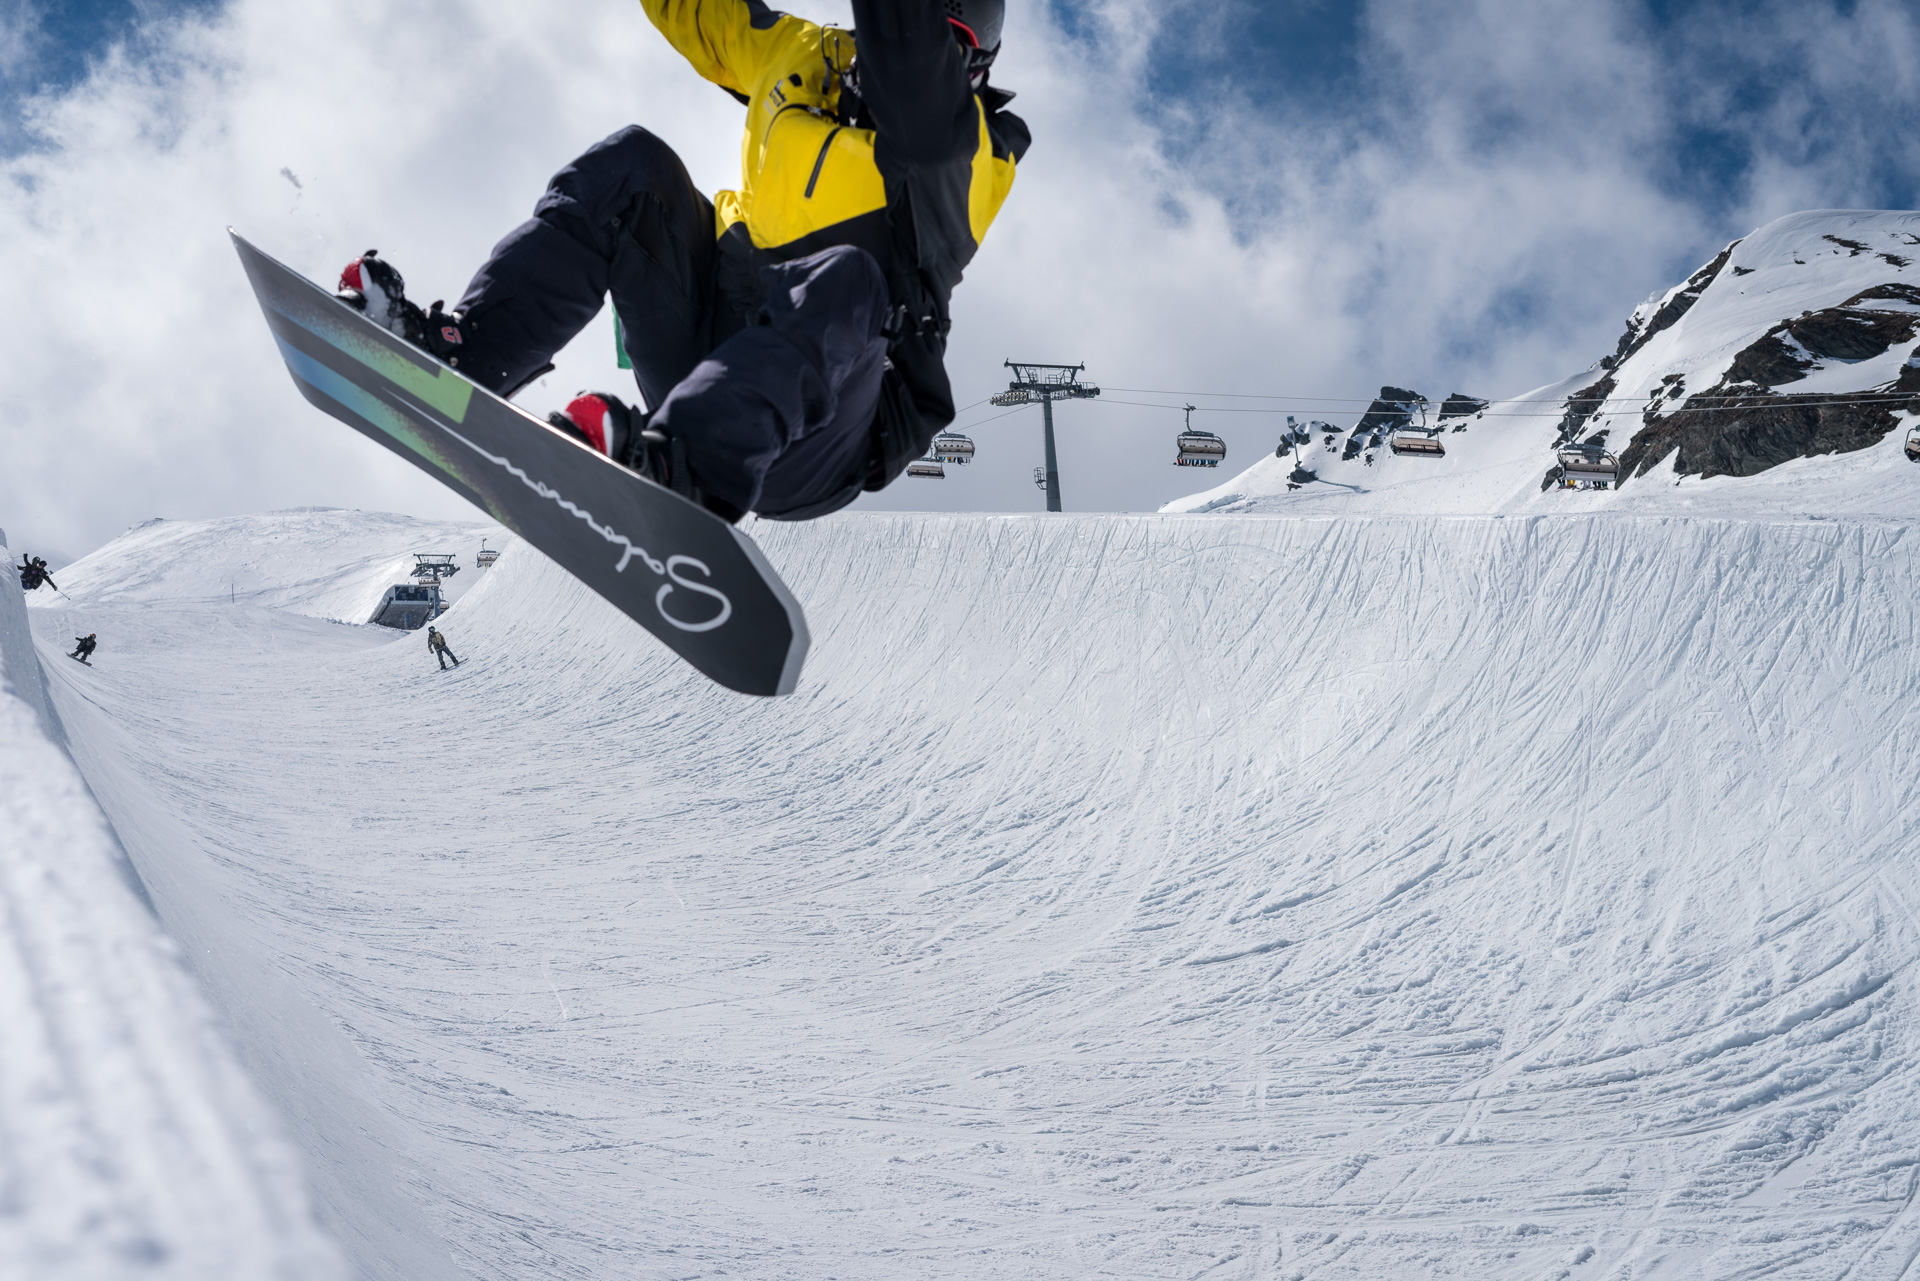 All in One Snowboard - Kind/Child, 3 Tage/Days Kurs/Course & 7 Tage/Days Rent